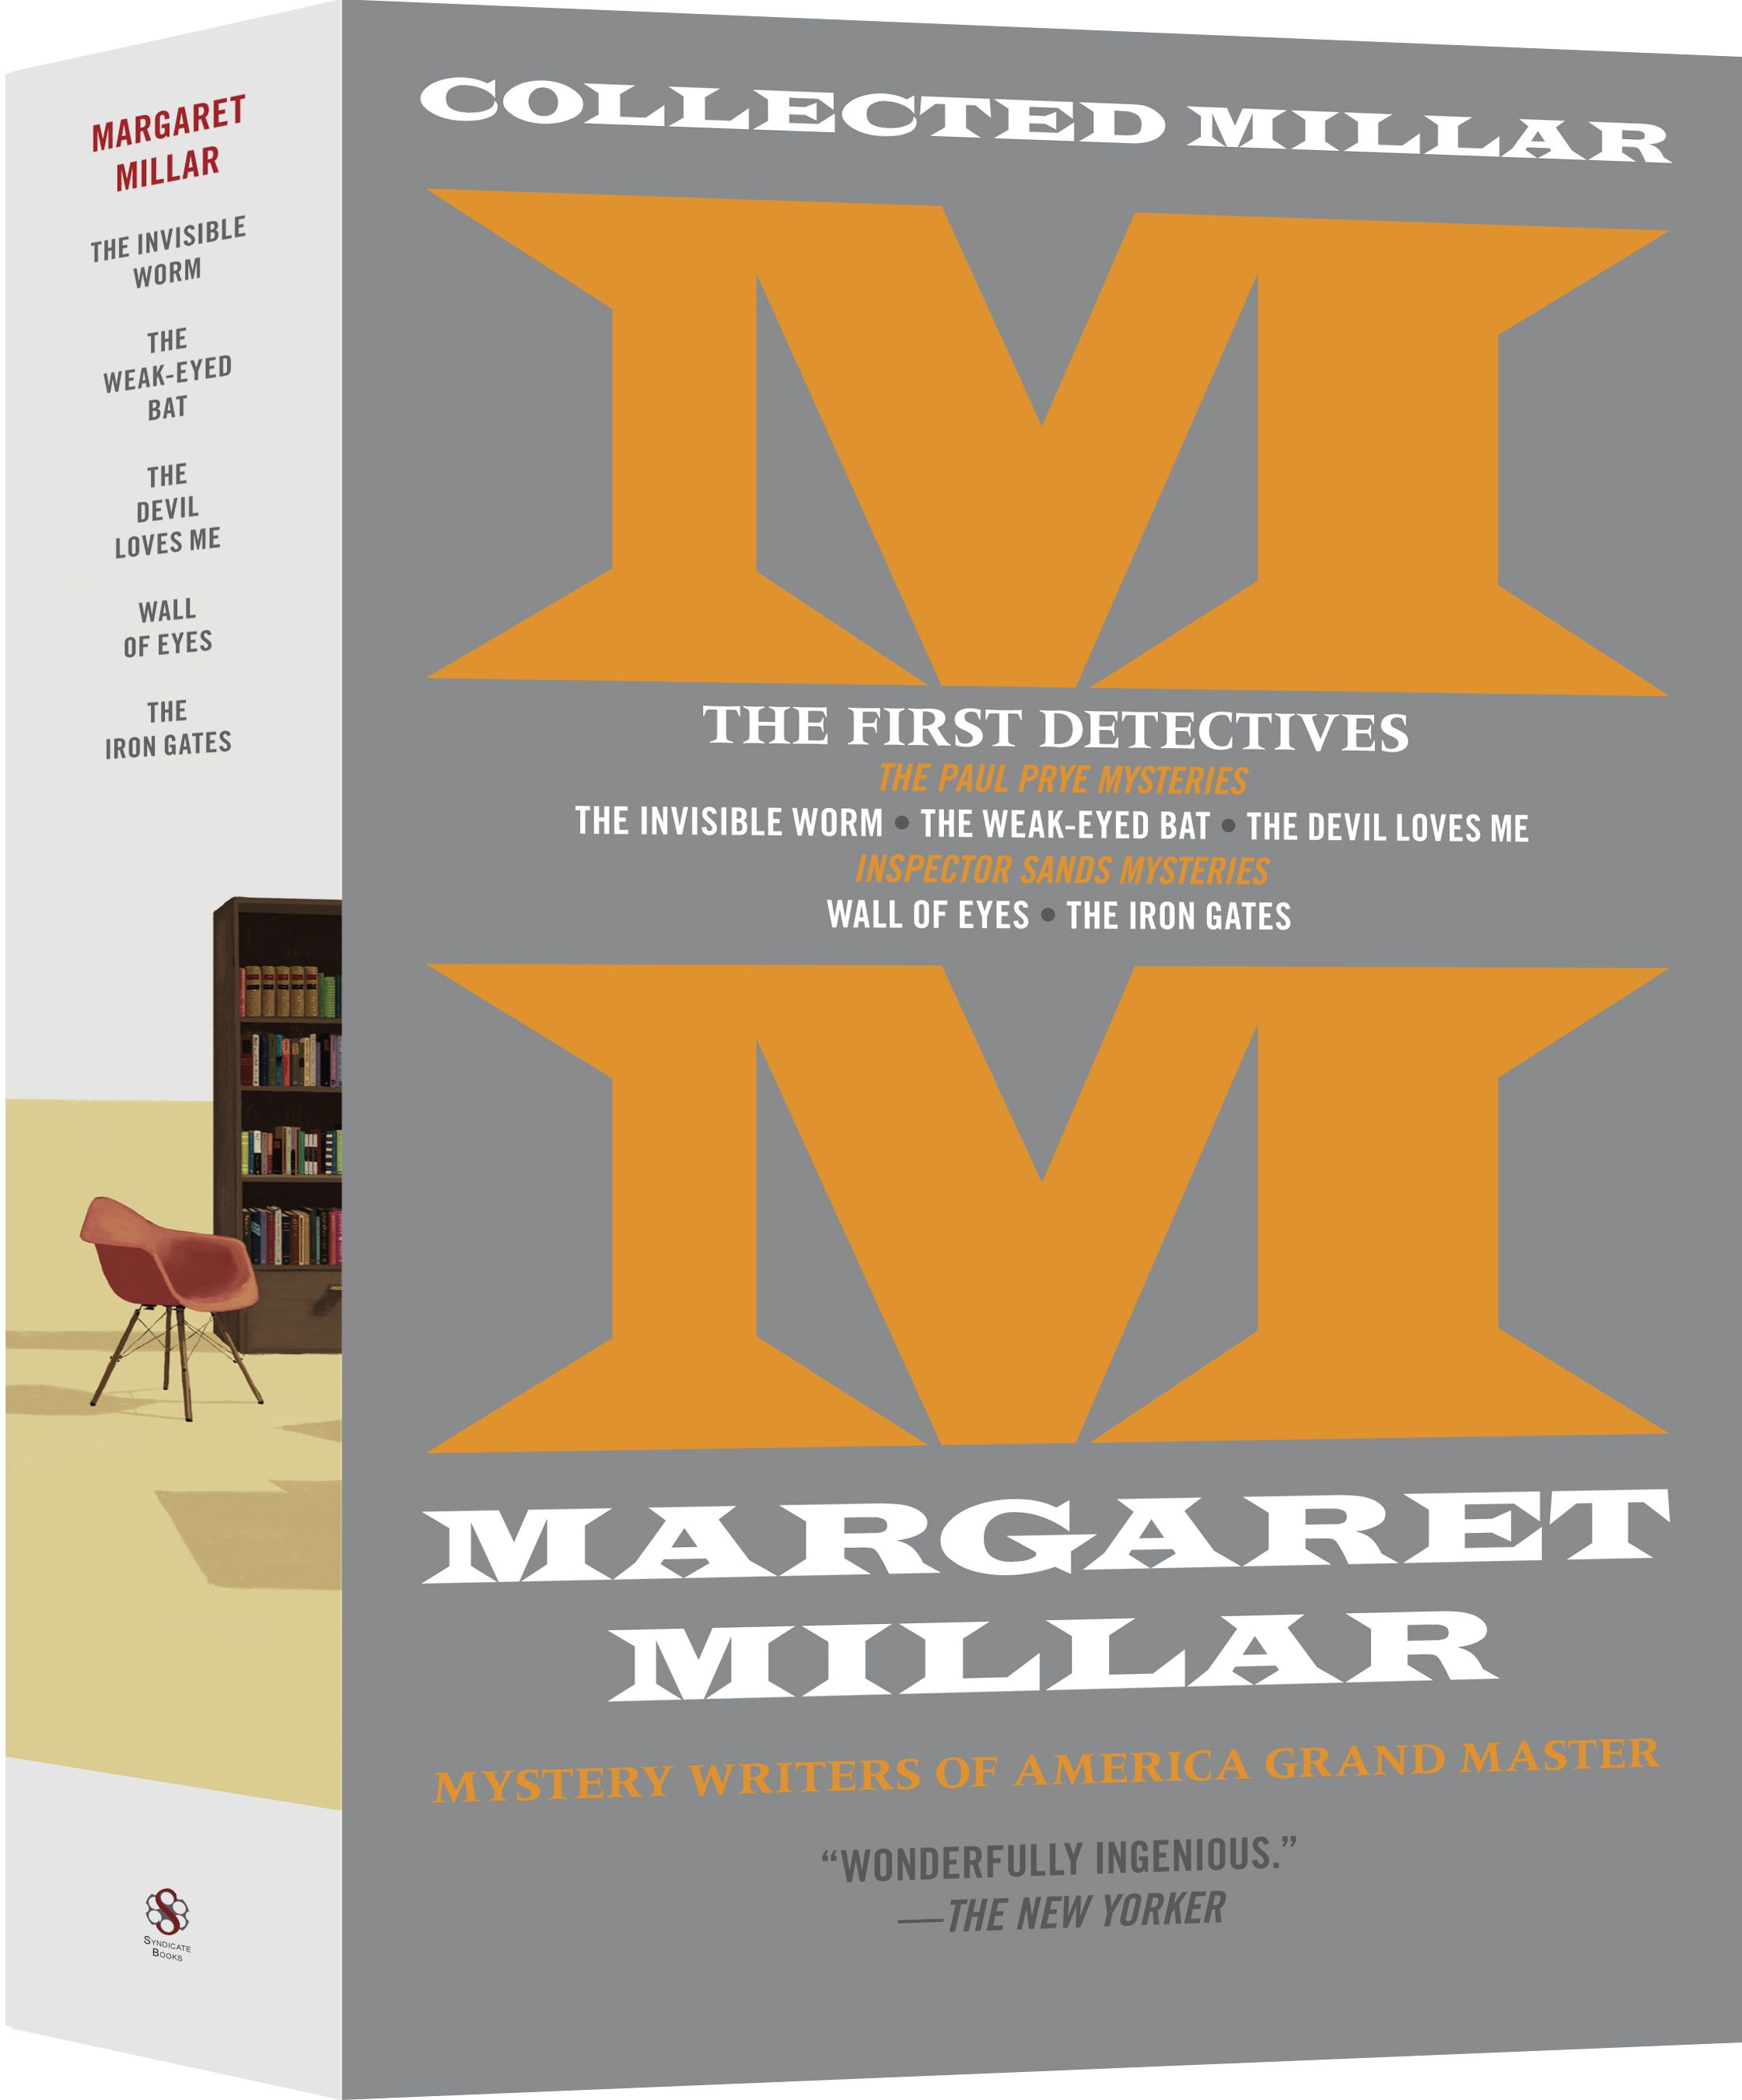 COLLECTED MILLAR: THE FIRST DETECTIVES